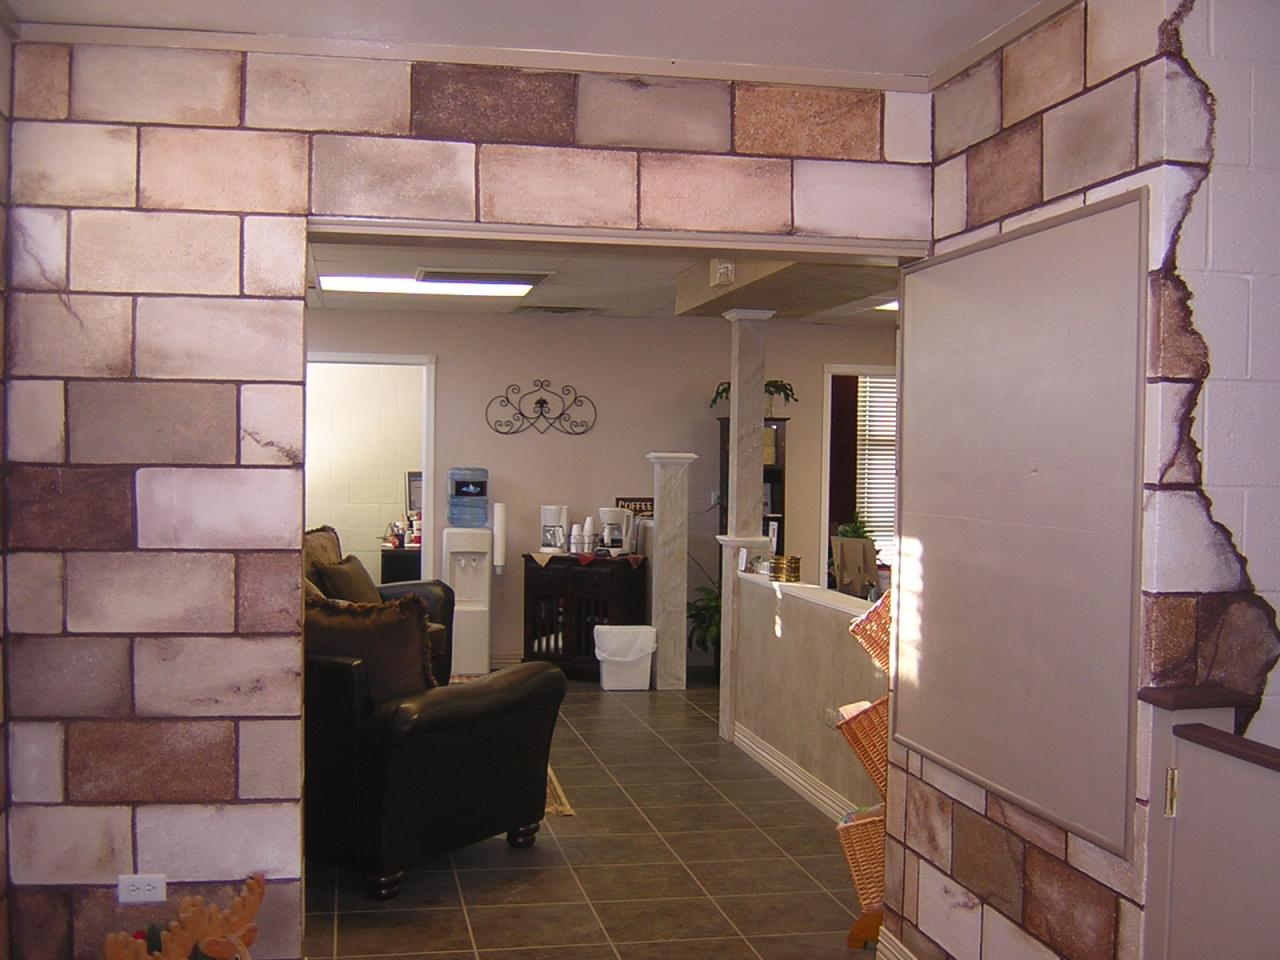 Artistic expressions painting decorating before after - Concrete block painting ideas ...